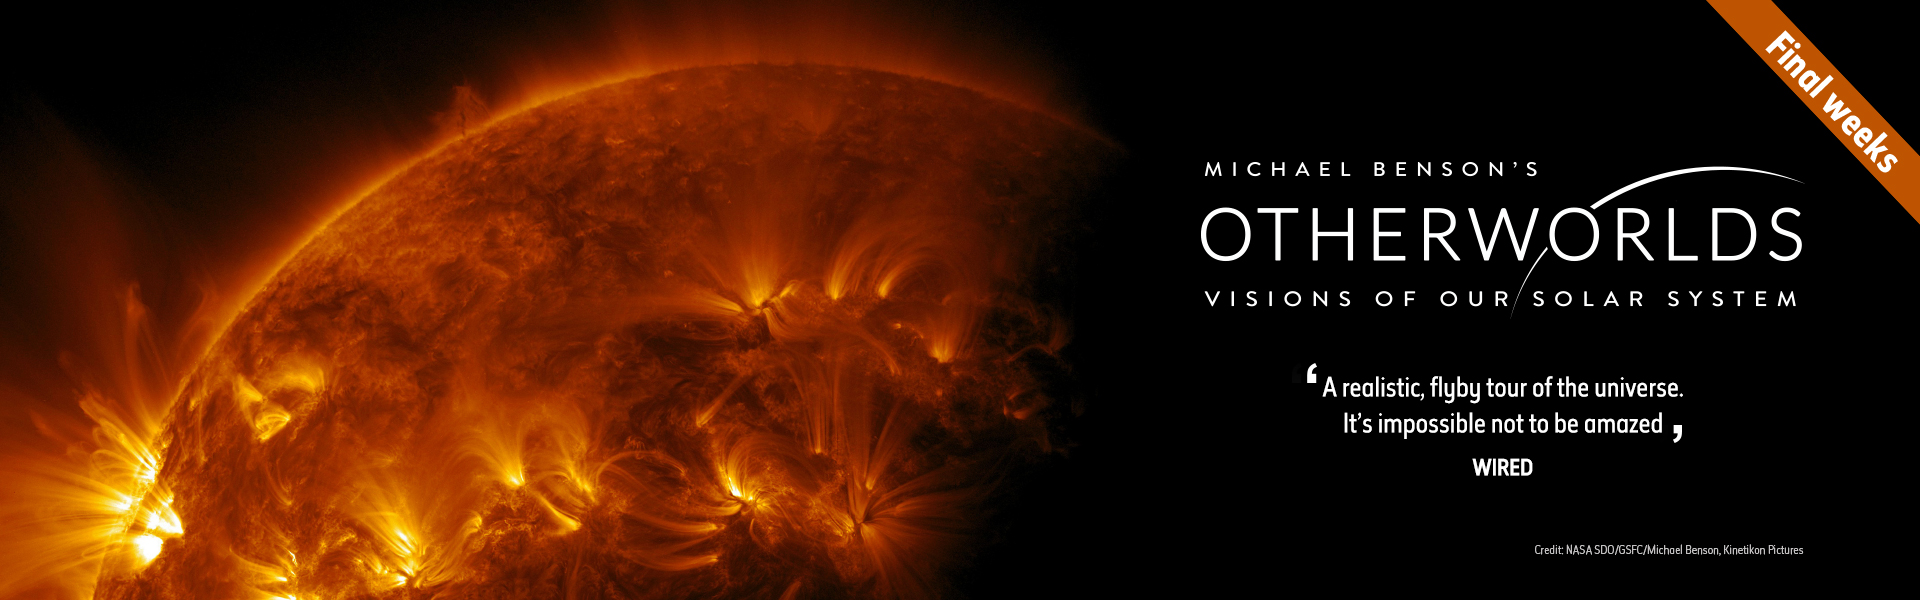 Otherworlds: Visions of our Solar System